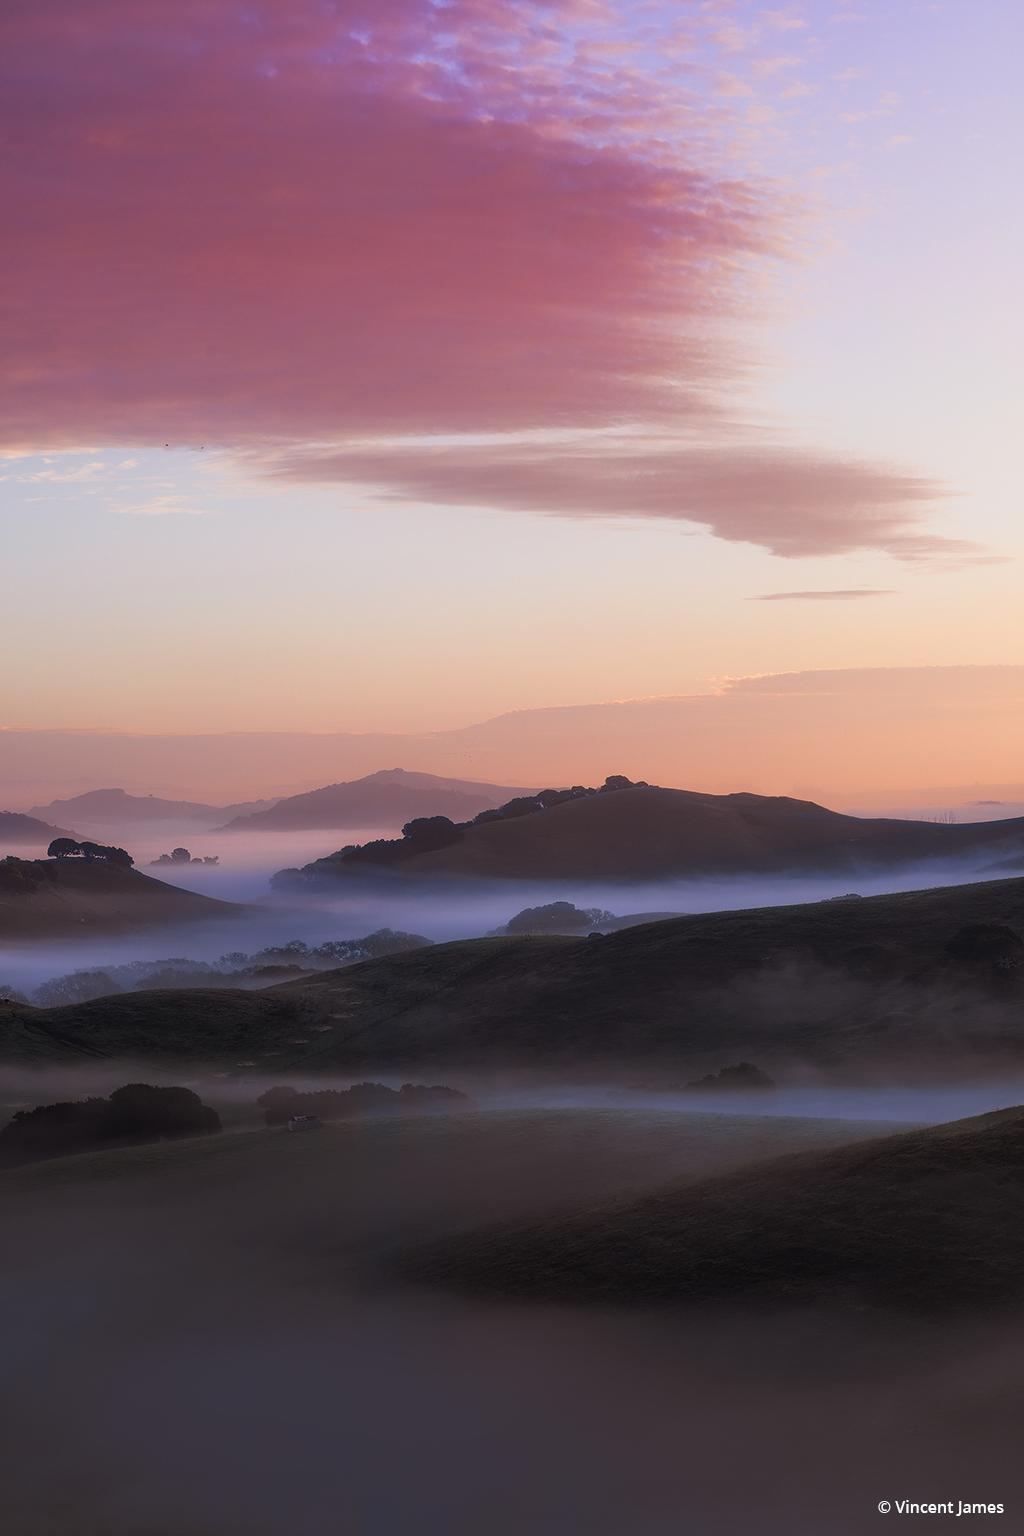 """Today's Photo Of The Day is """"Today's Photo Of The Day is """"Fog Swept"""" by Vincent James. Location: Petaluma Hills, Sonoma County, California."""